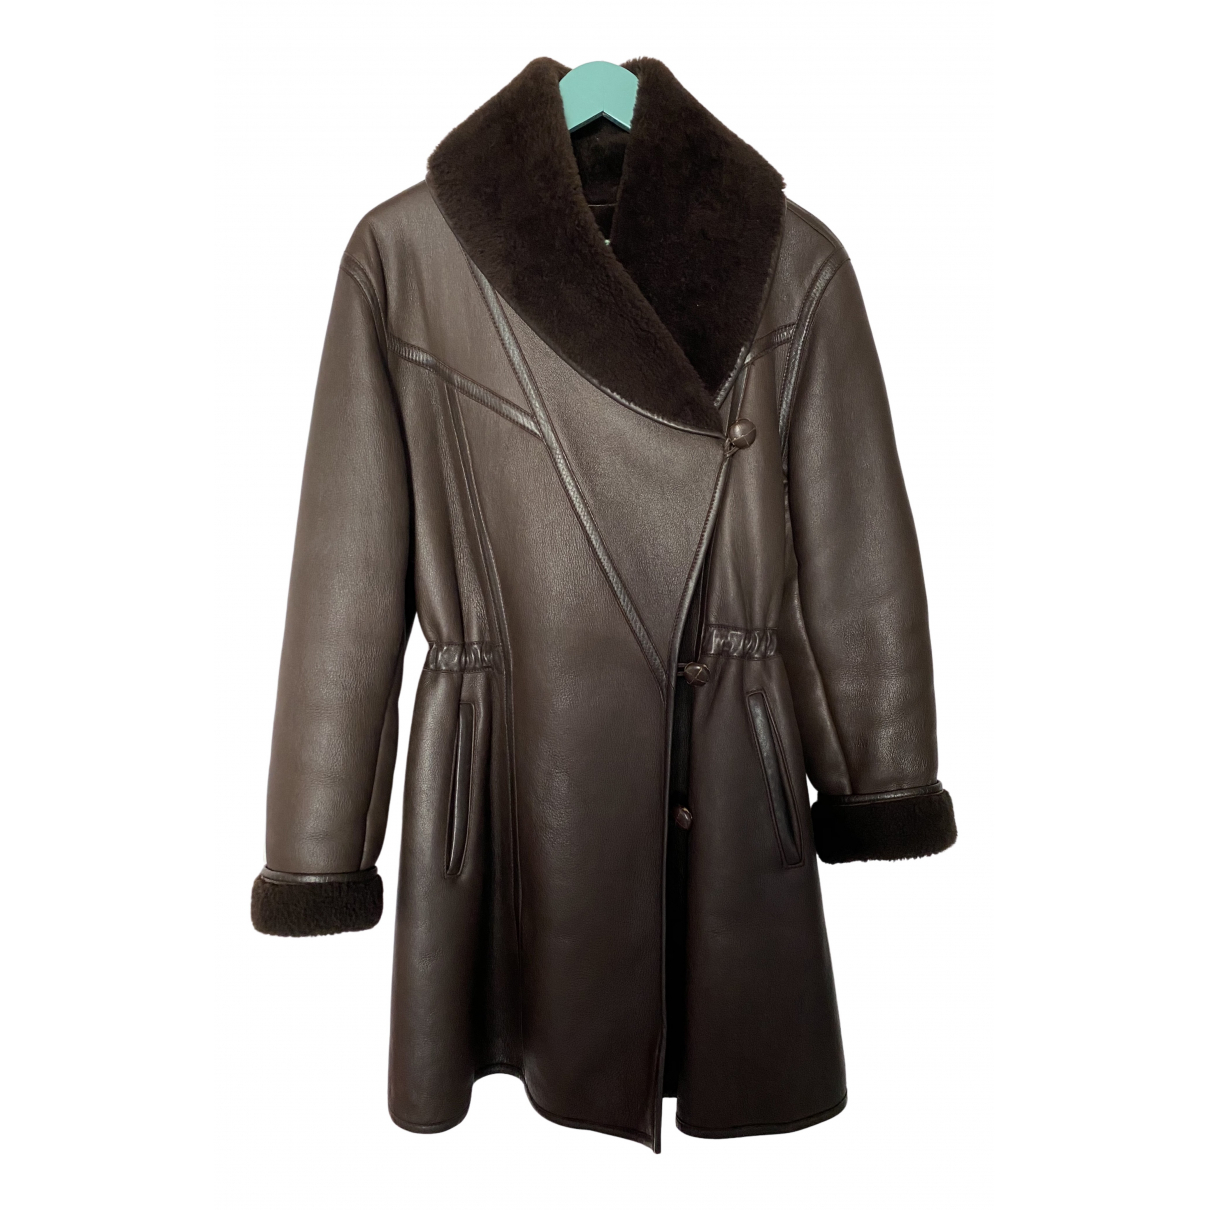 Kenzo N Brown Shearling Leather jacket for Women 38 FR